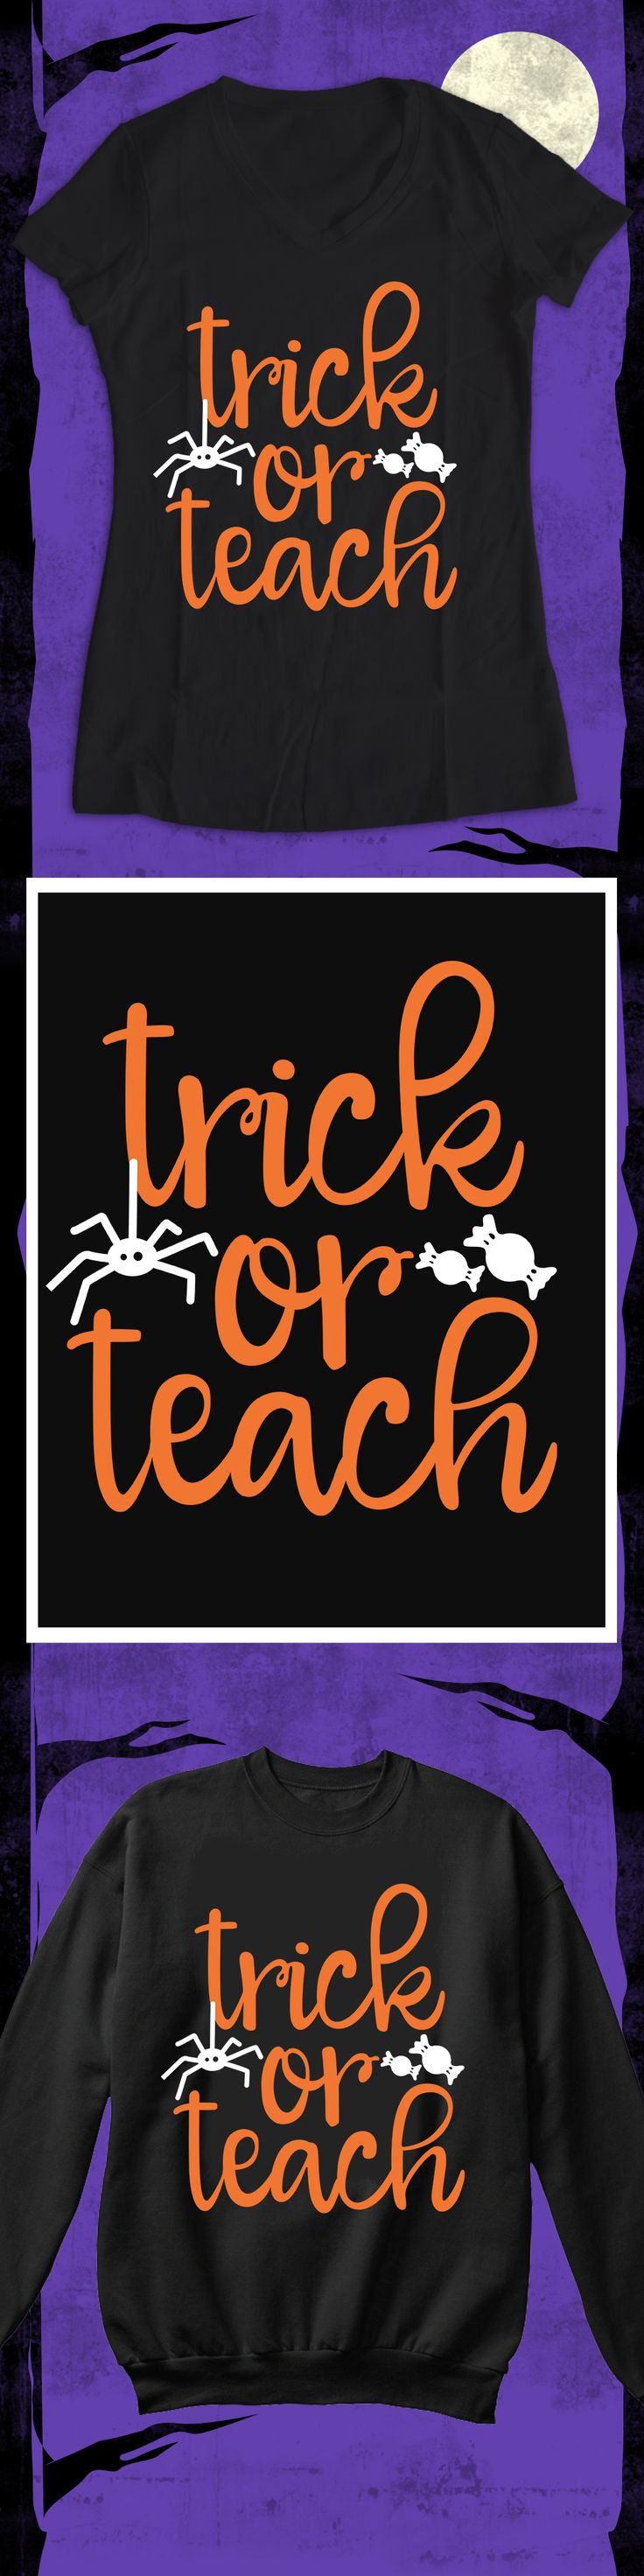 Trick or Teach - Limited edition. Order 2 or more for friends/family & save on shipping! Makes a great gift!